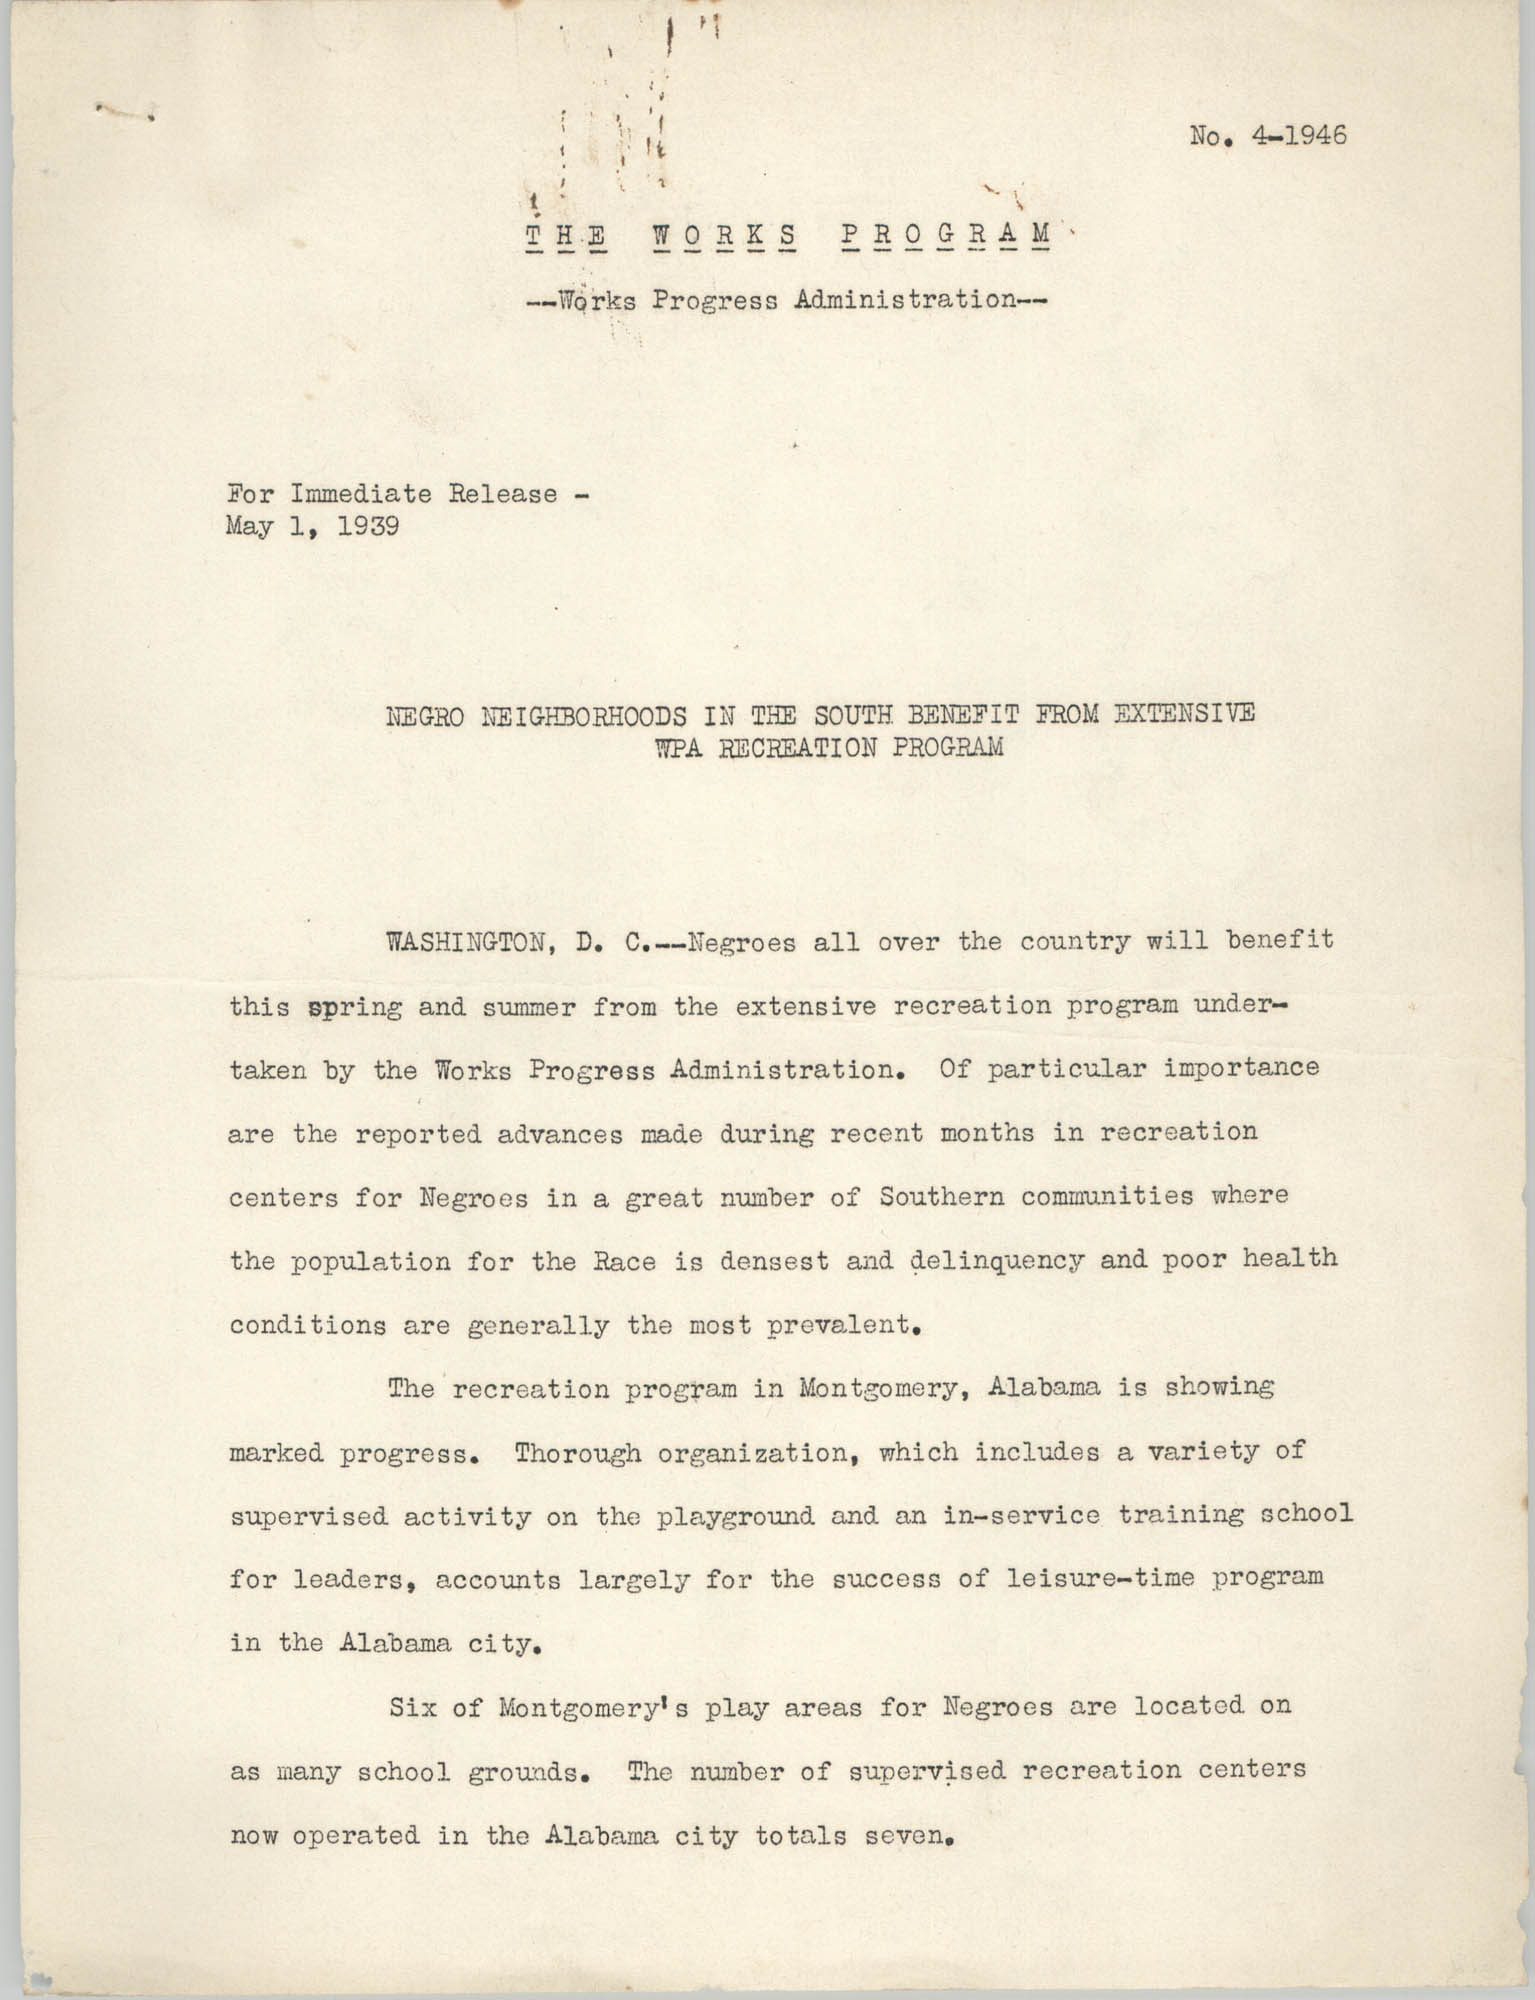 The Works Program, Press Release, May 1, 1939